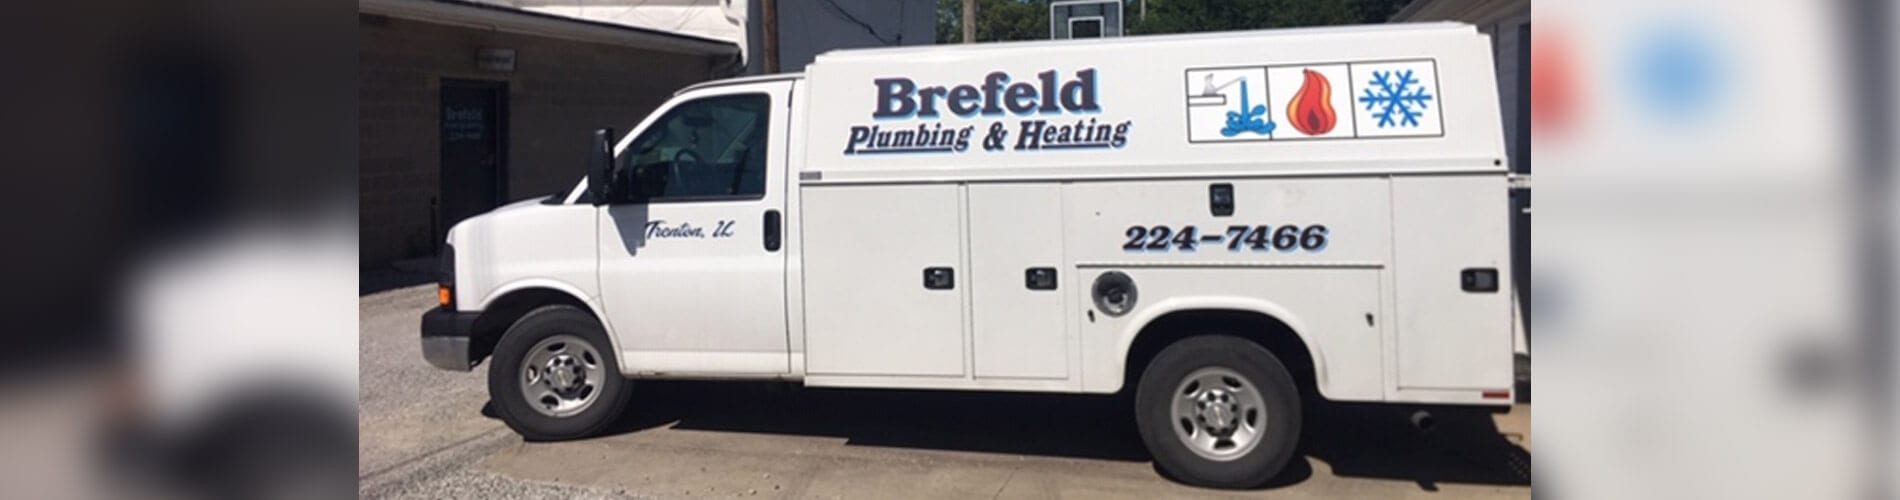 brefeld plumbing and heating trenton il